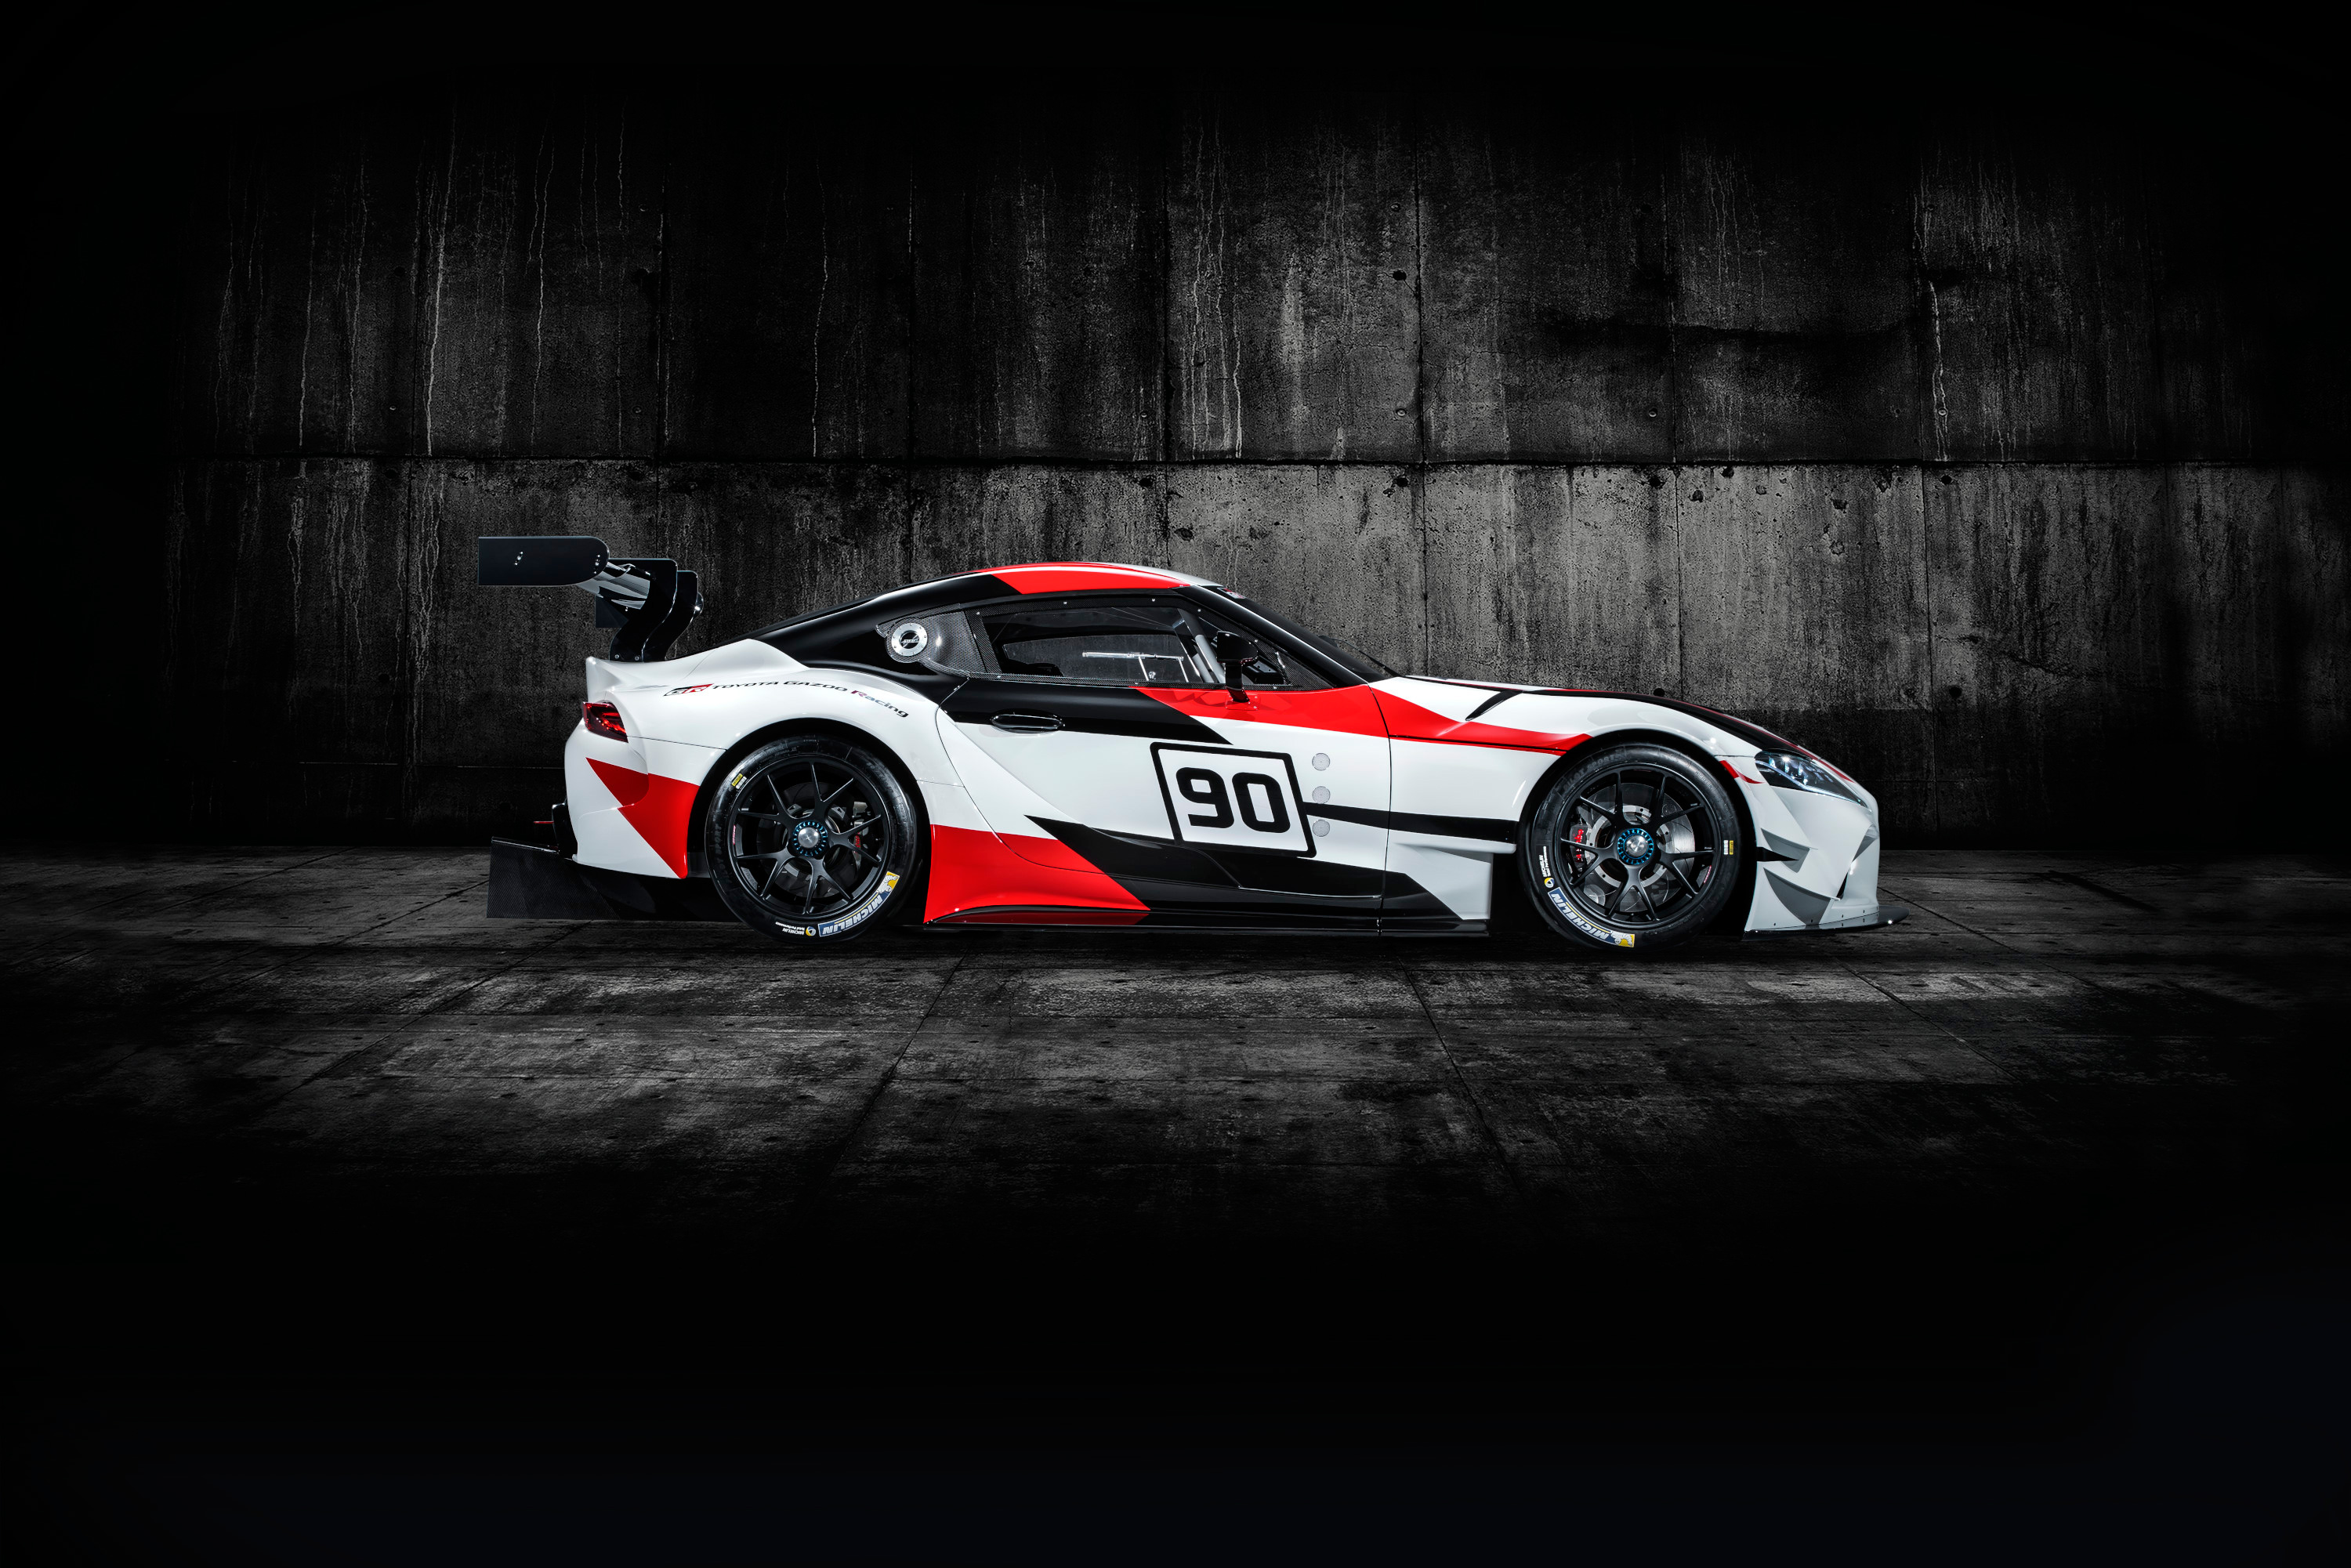 Toyota GR Supra Racing Concept - 2018 - side-face / profil